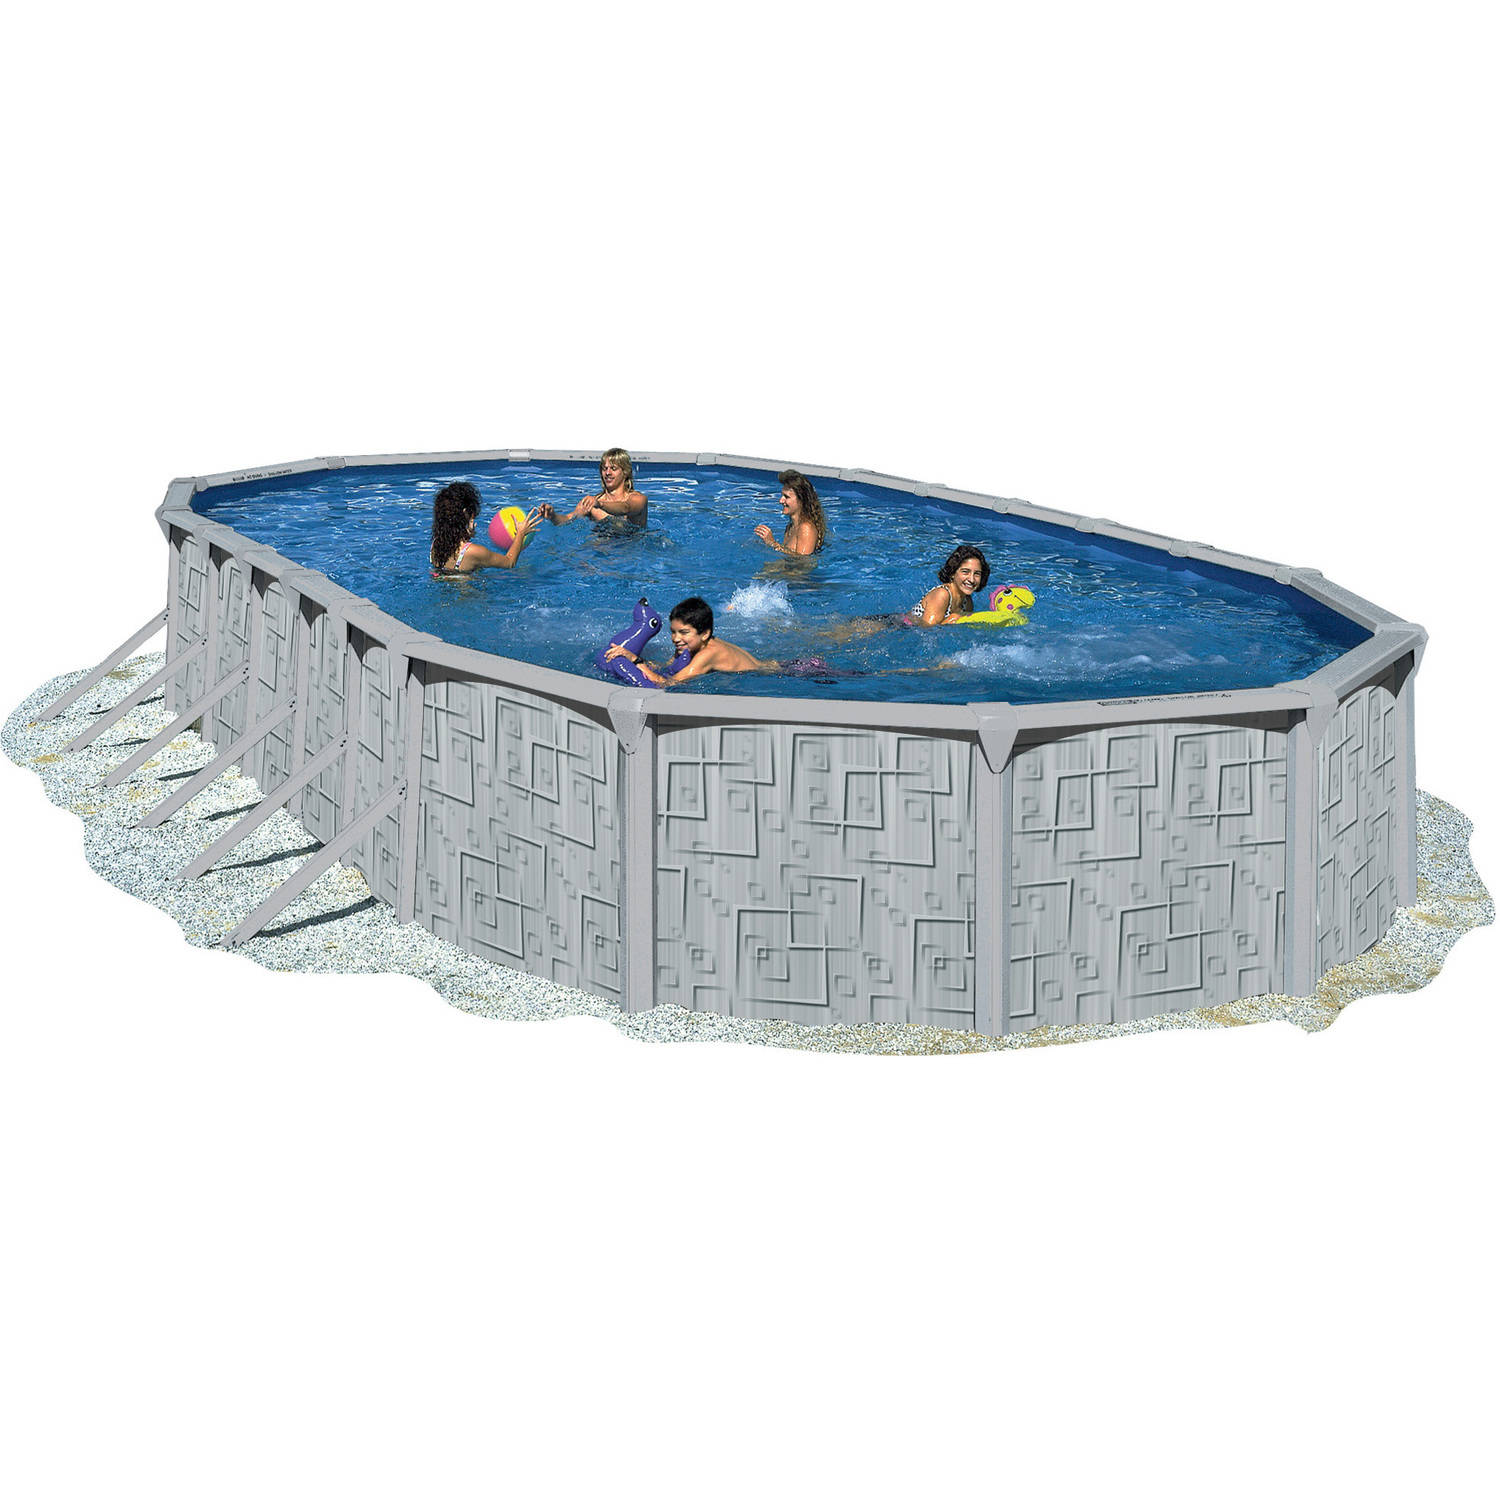 """Heritage 33' x 18' x 52"""" Illusion Steel Wall Above Ground Swimming Pool by Heritage"""